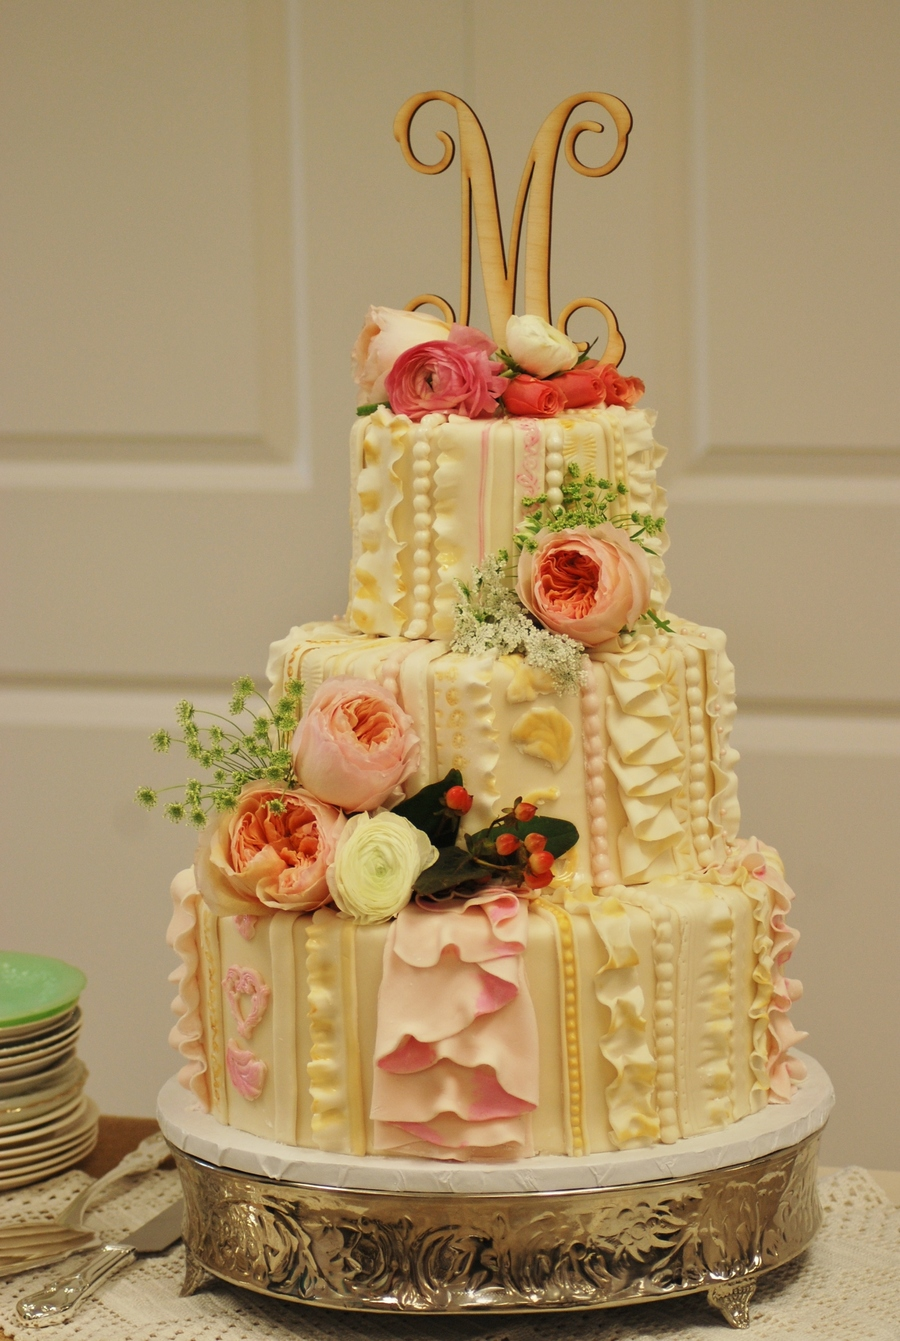 I Did This Wedding Cake For My Daughters Big Day She Had A ...